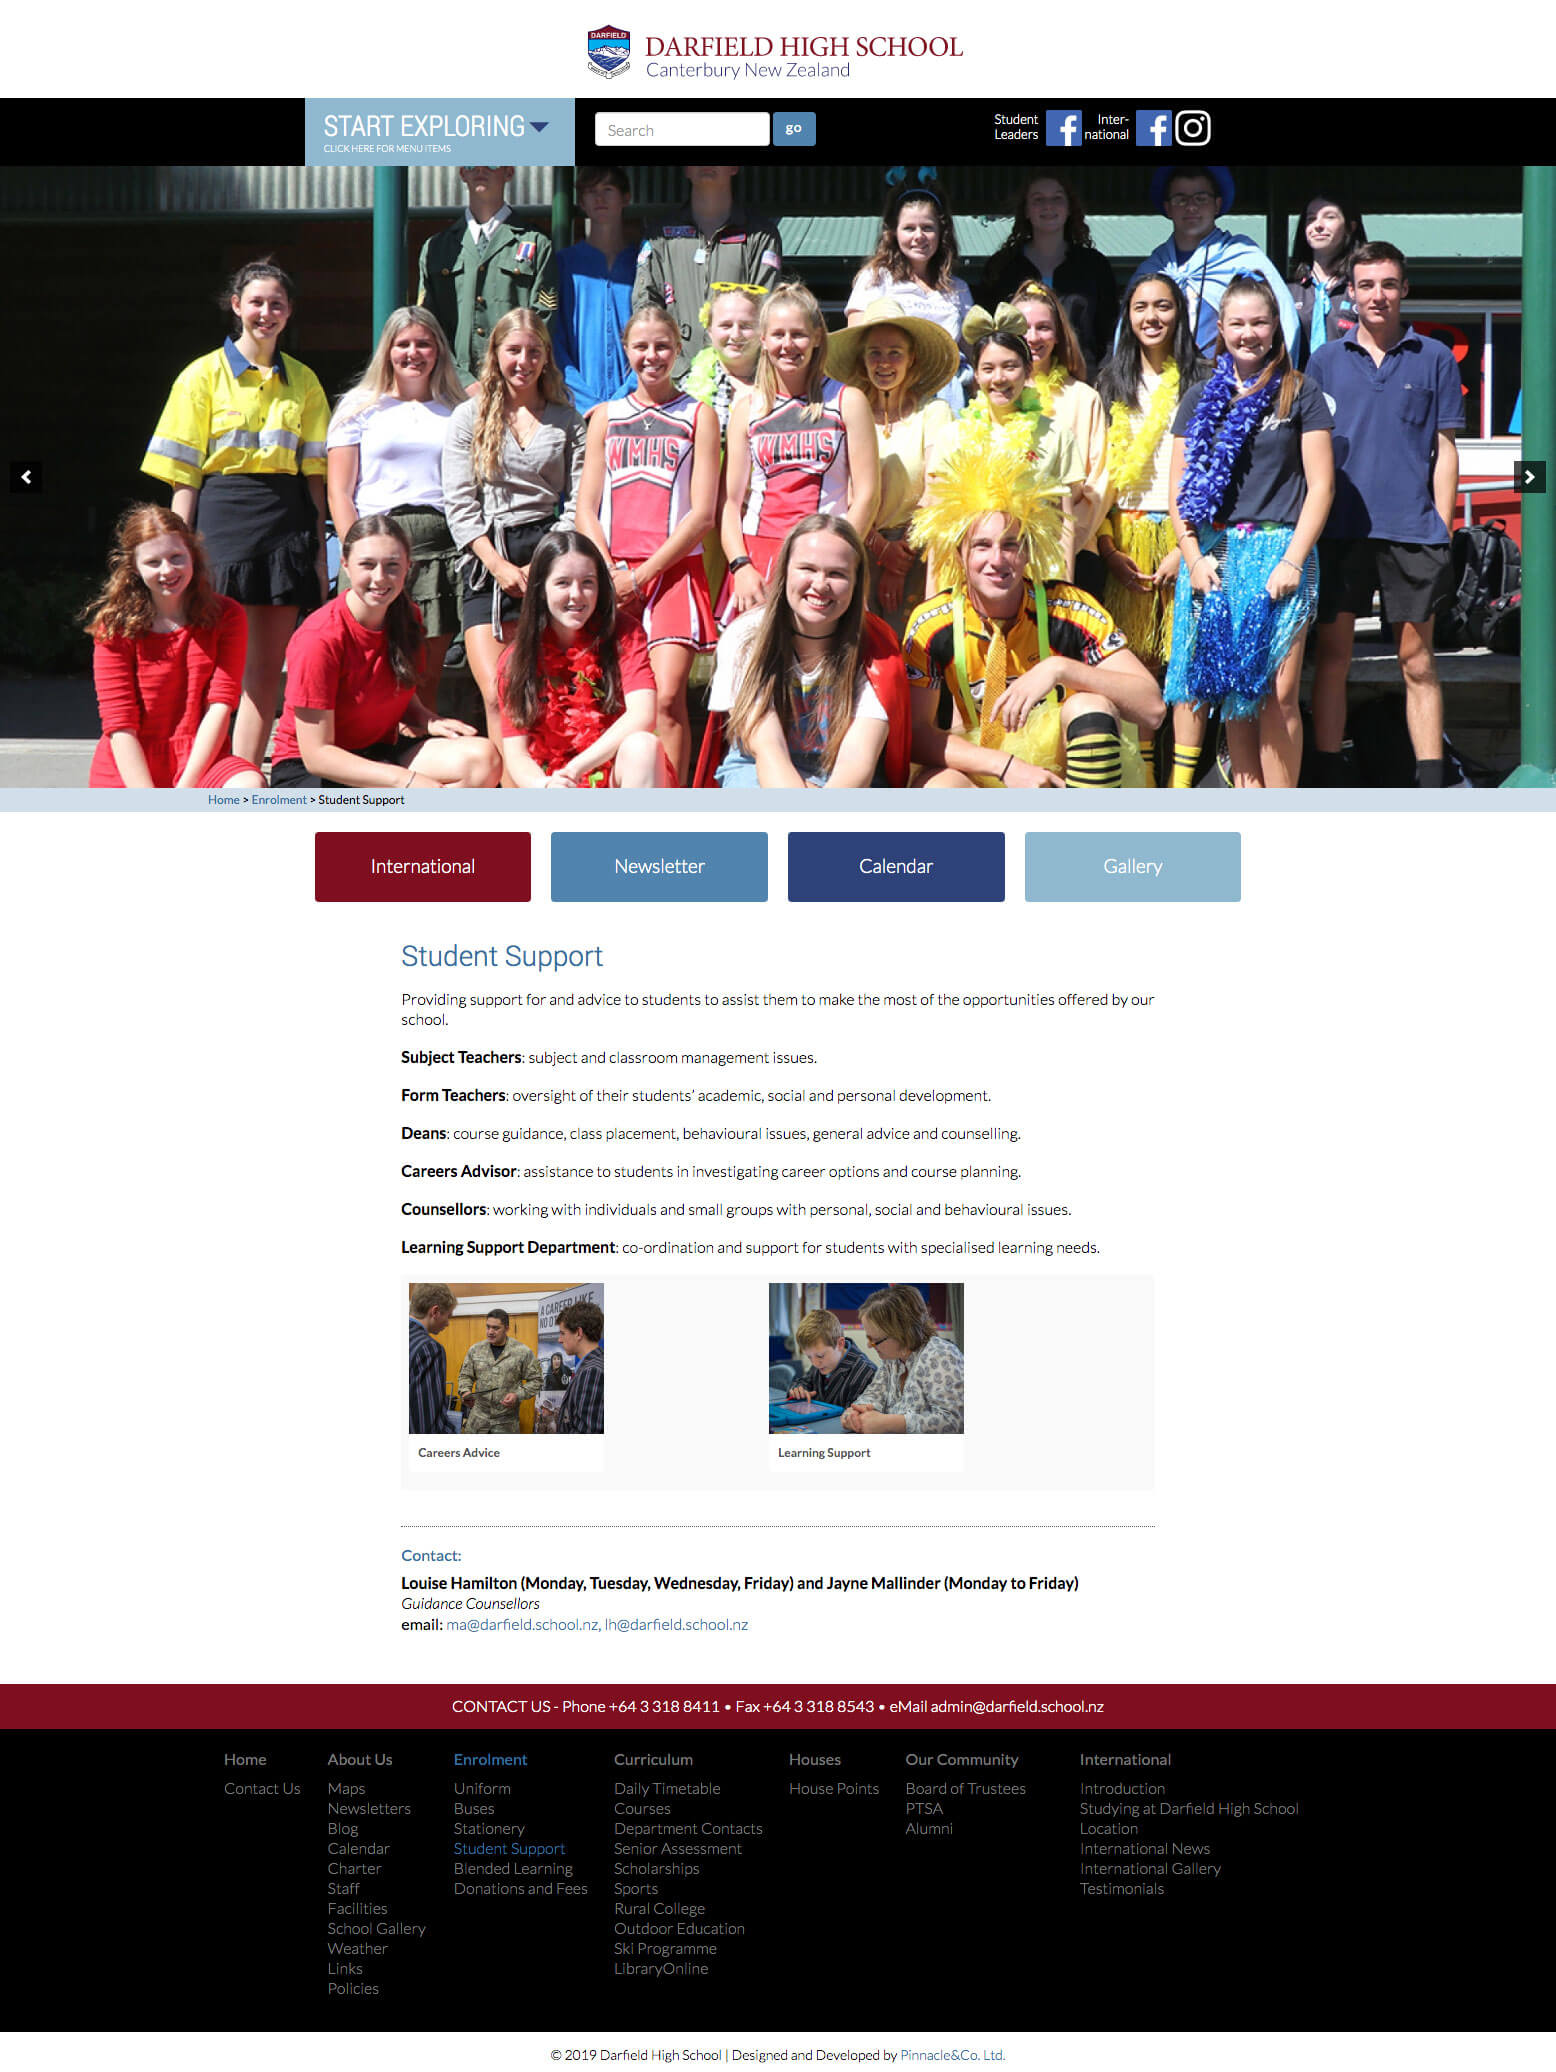 Darfield High School Website